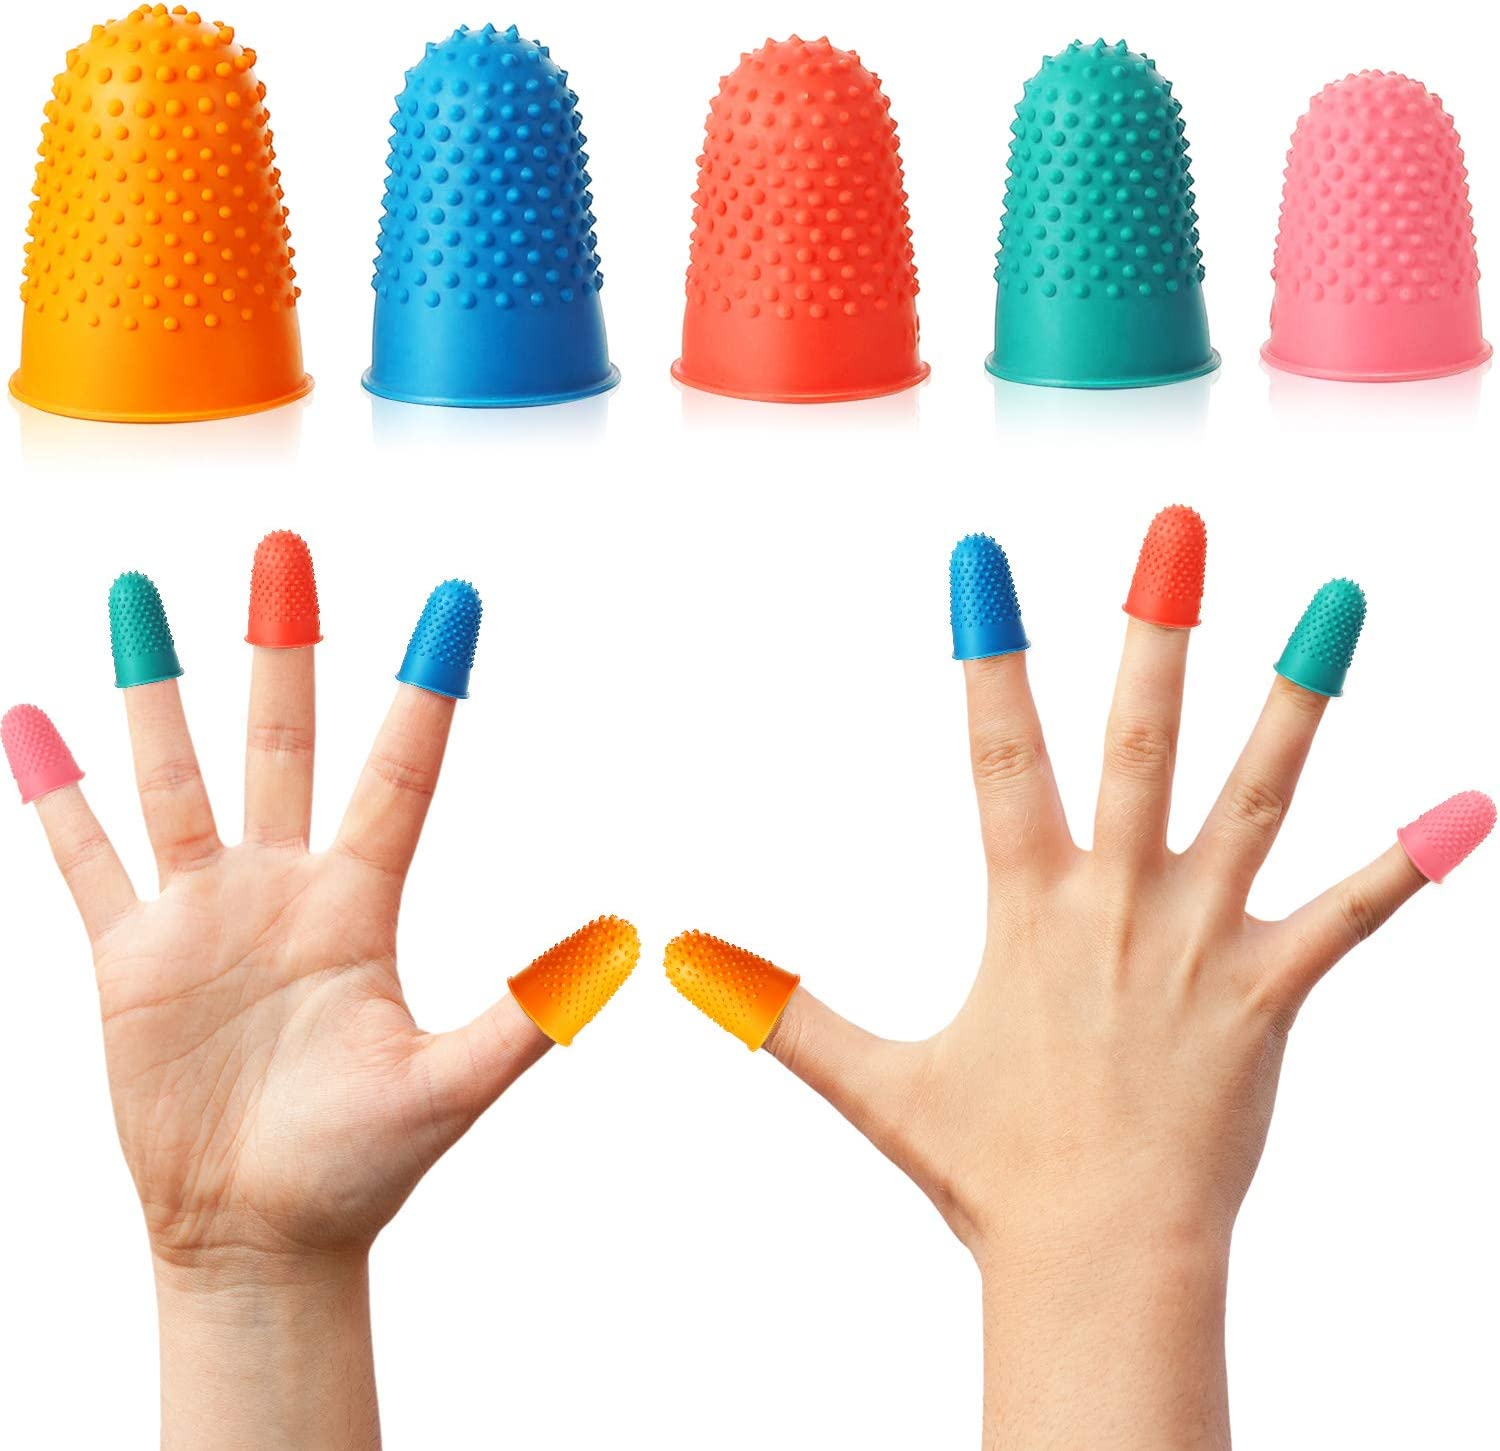 100 Pieces Rubber Fingers Tips Office Finger Protectors Reusable Finger Cover Pads for Money Counting Collating Writing Sorting Task Hot Glue and Sport Games Assorted Sizes and Colors